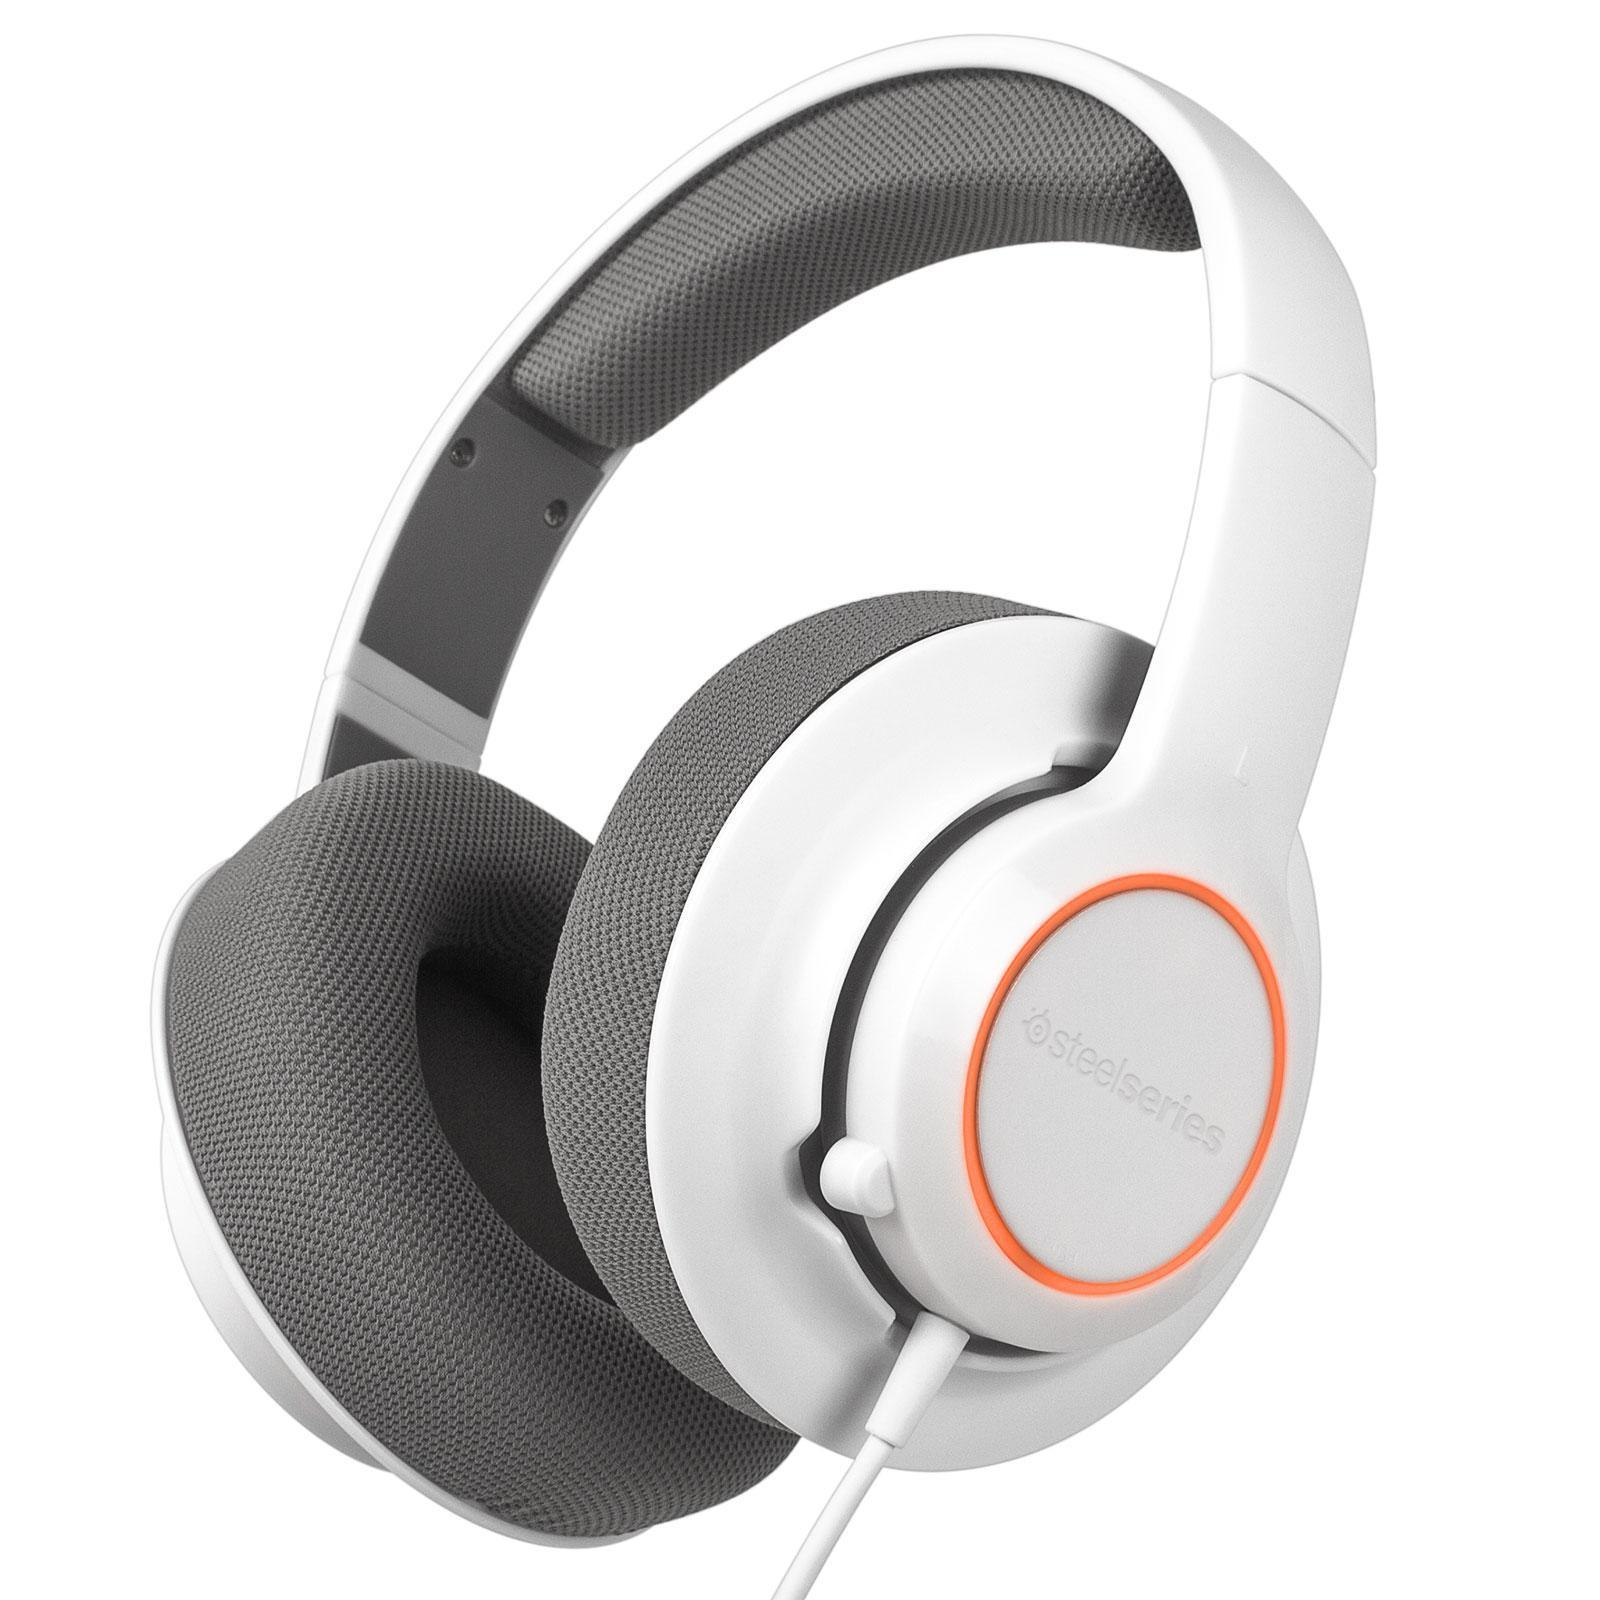 Casque SteelSeries Siberia Raw Prism - Blanc